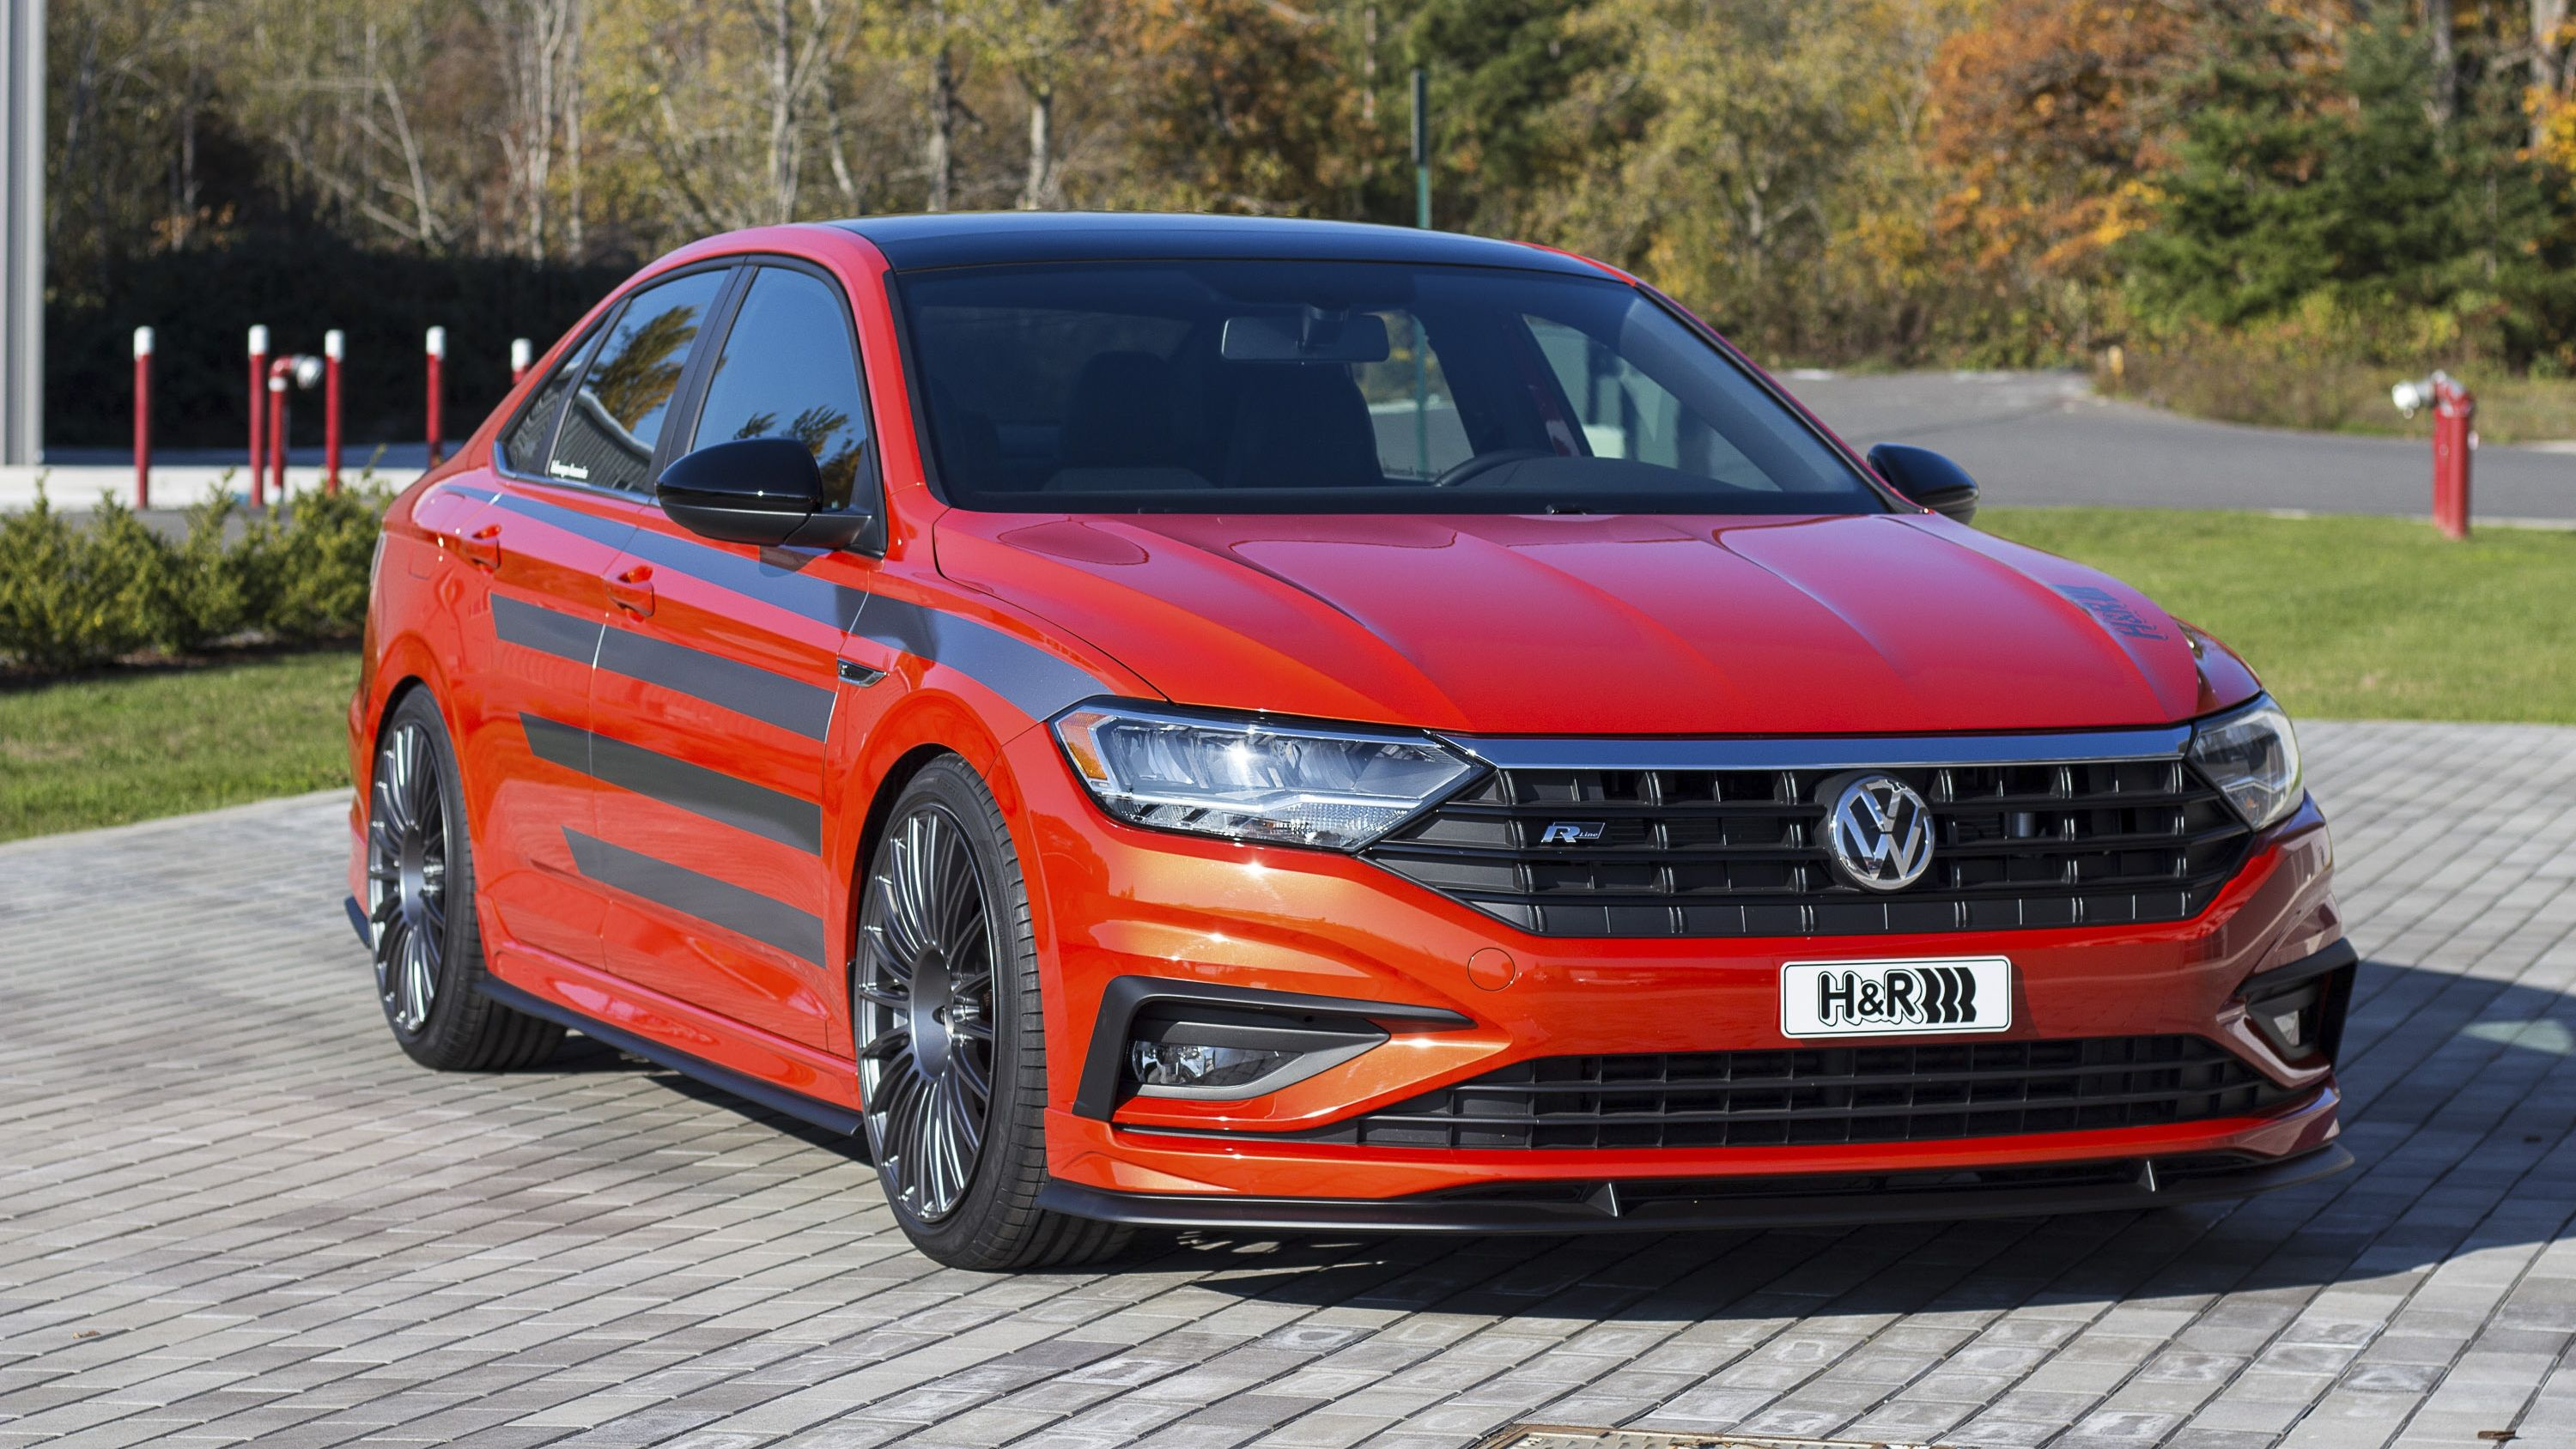 2019 Volkswagen Jetta R Line By H R Special Springs Top Speed Volkswagen Jetta Volkswagen Vw Jetta